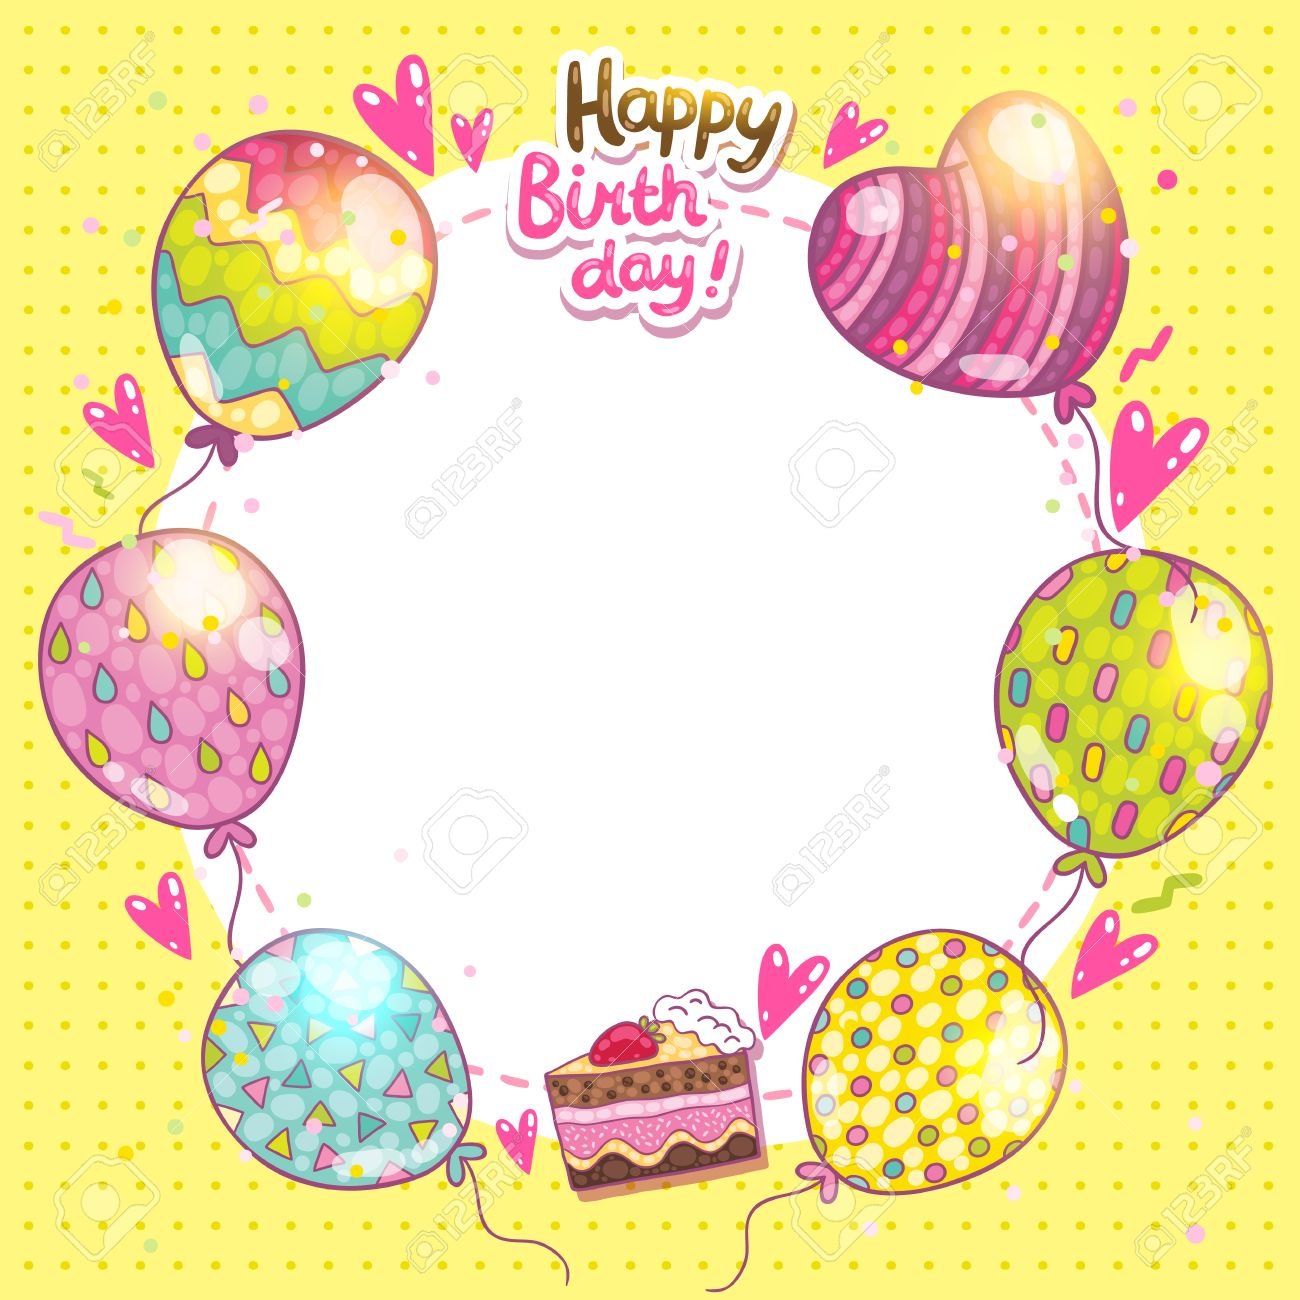 Happy Birthday Card Background With Cake And Balloons Royalty Free